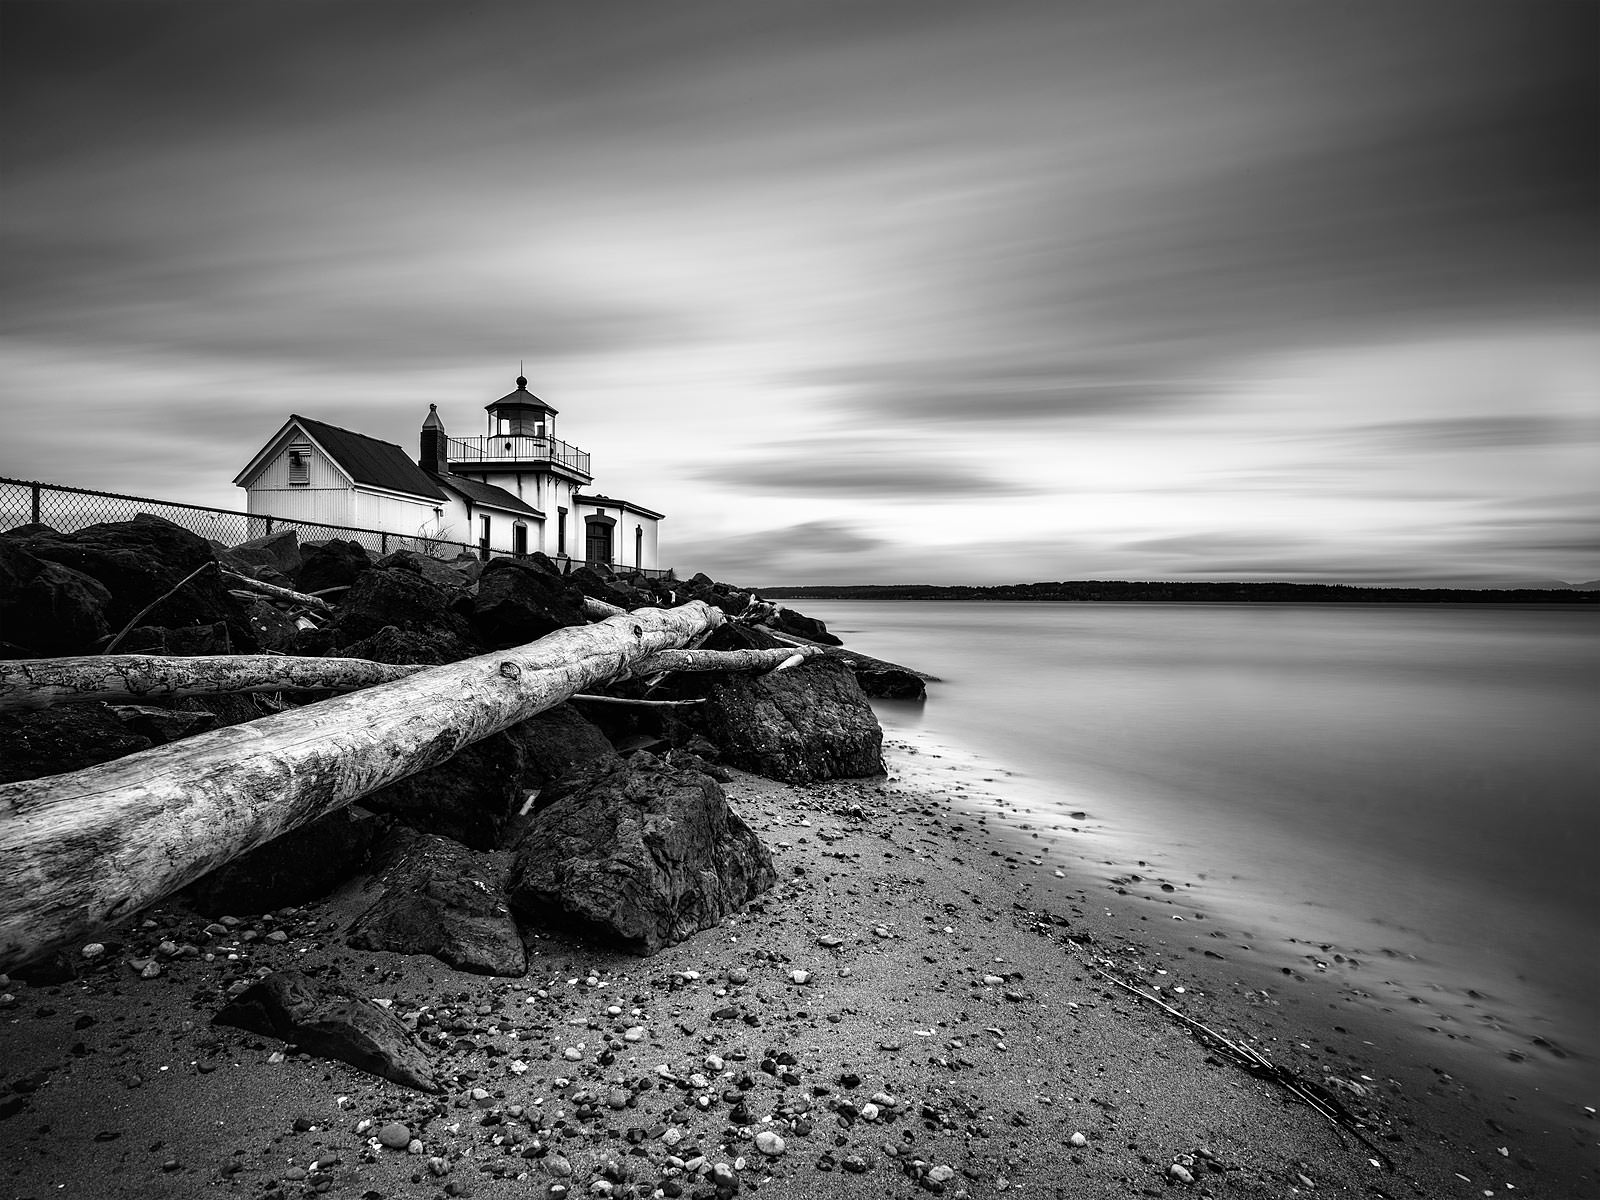 West, Point, Lighthouse, Discovery, Park, Historic, Places, Seattle, Washington, West, Point, Elliott Bay, Pacific, Northwest, landscape, photo, dreary, day, mood, scene, Limited, edition, coastline, photo